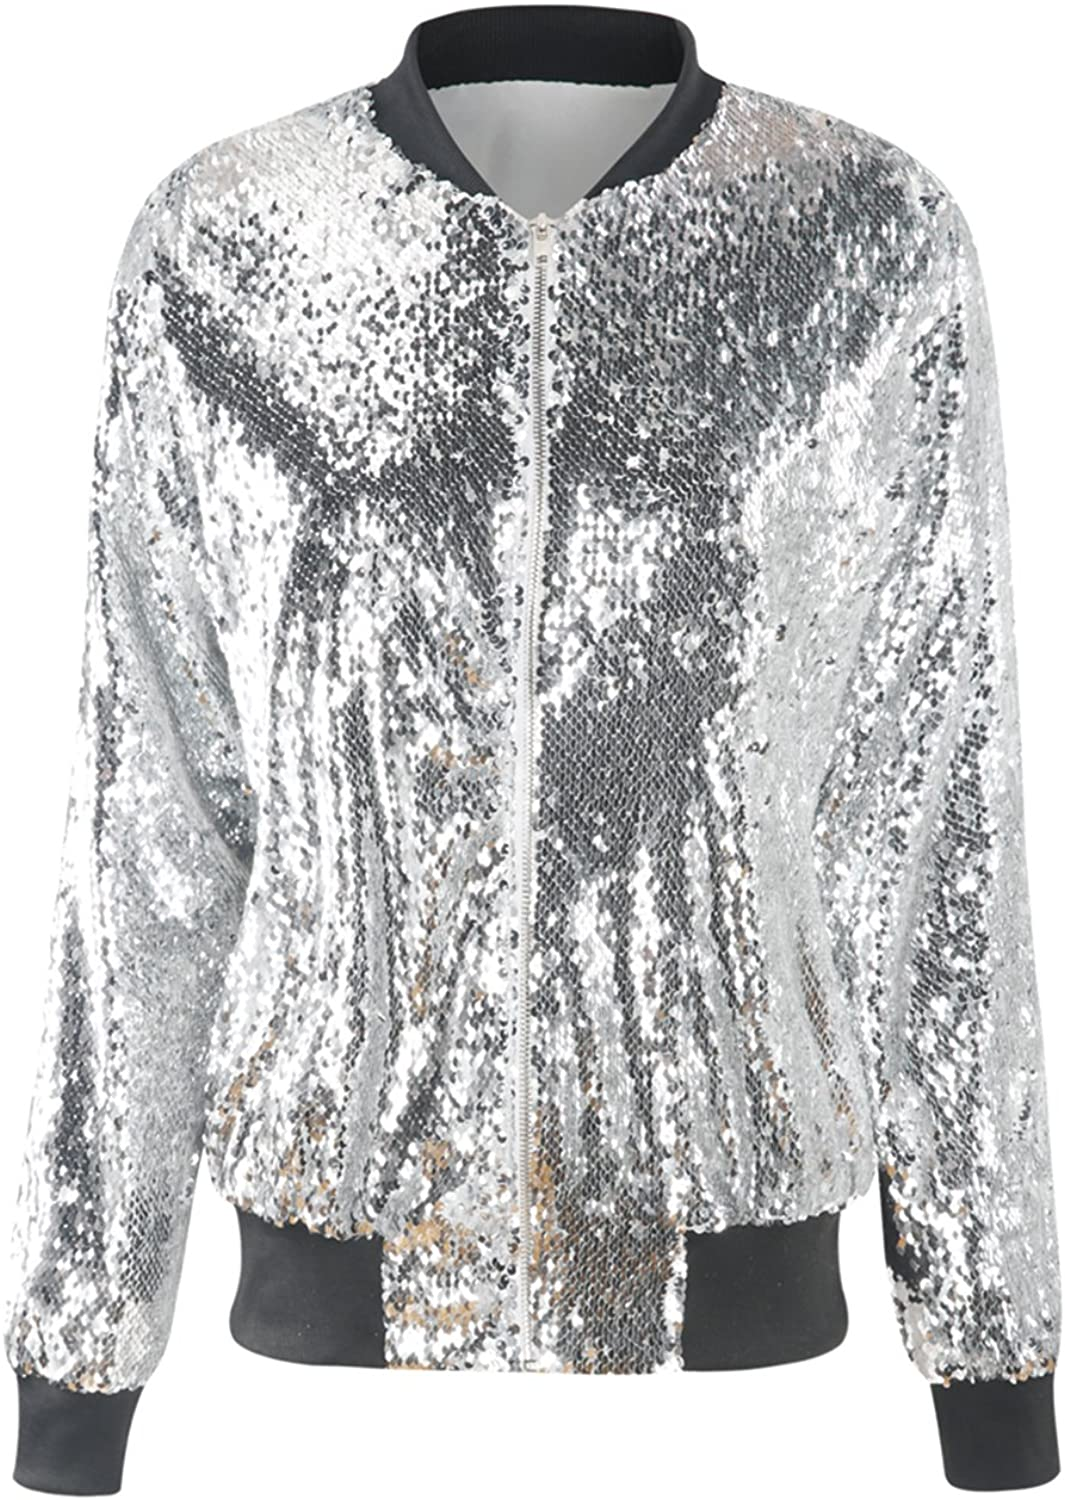 hodoyi Womens Sparkly Sequin Lightweight Long Sleeve Outwear Bomber Jacket